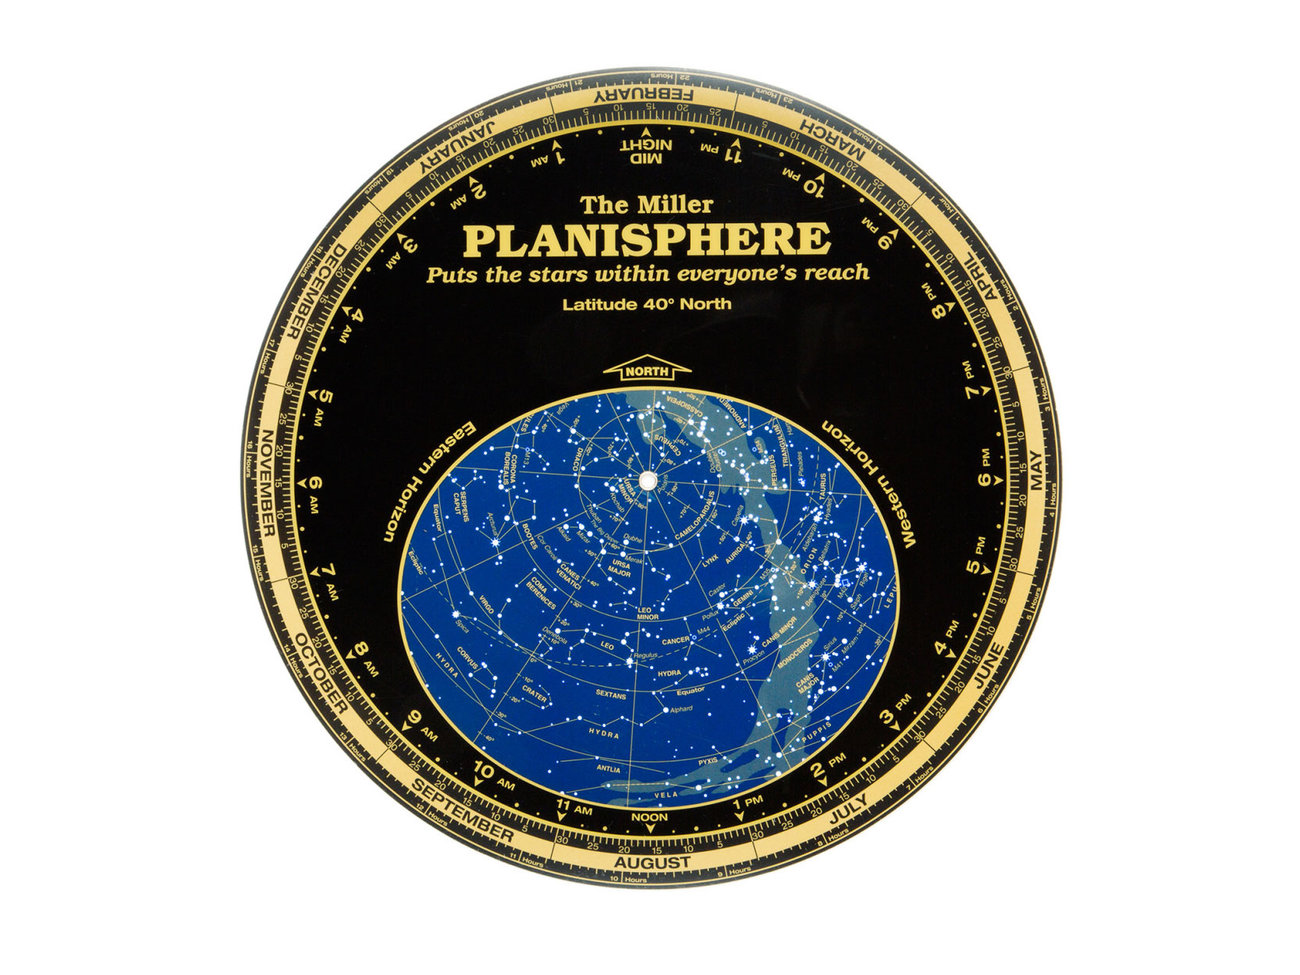 Best-Made-Co-Planisphere-Road-Sleep-PRODUCTS0316.jpg